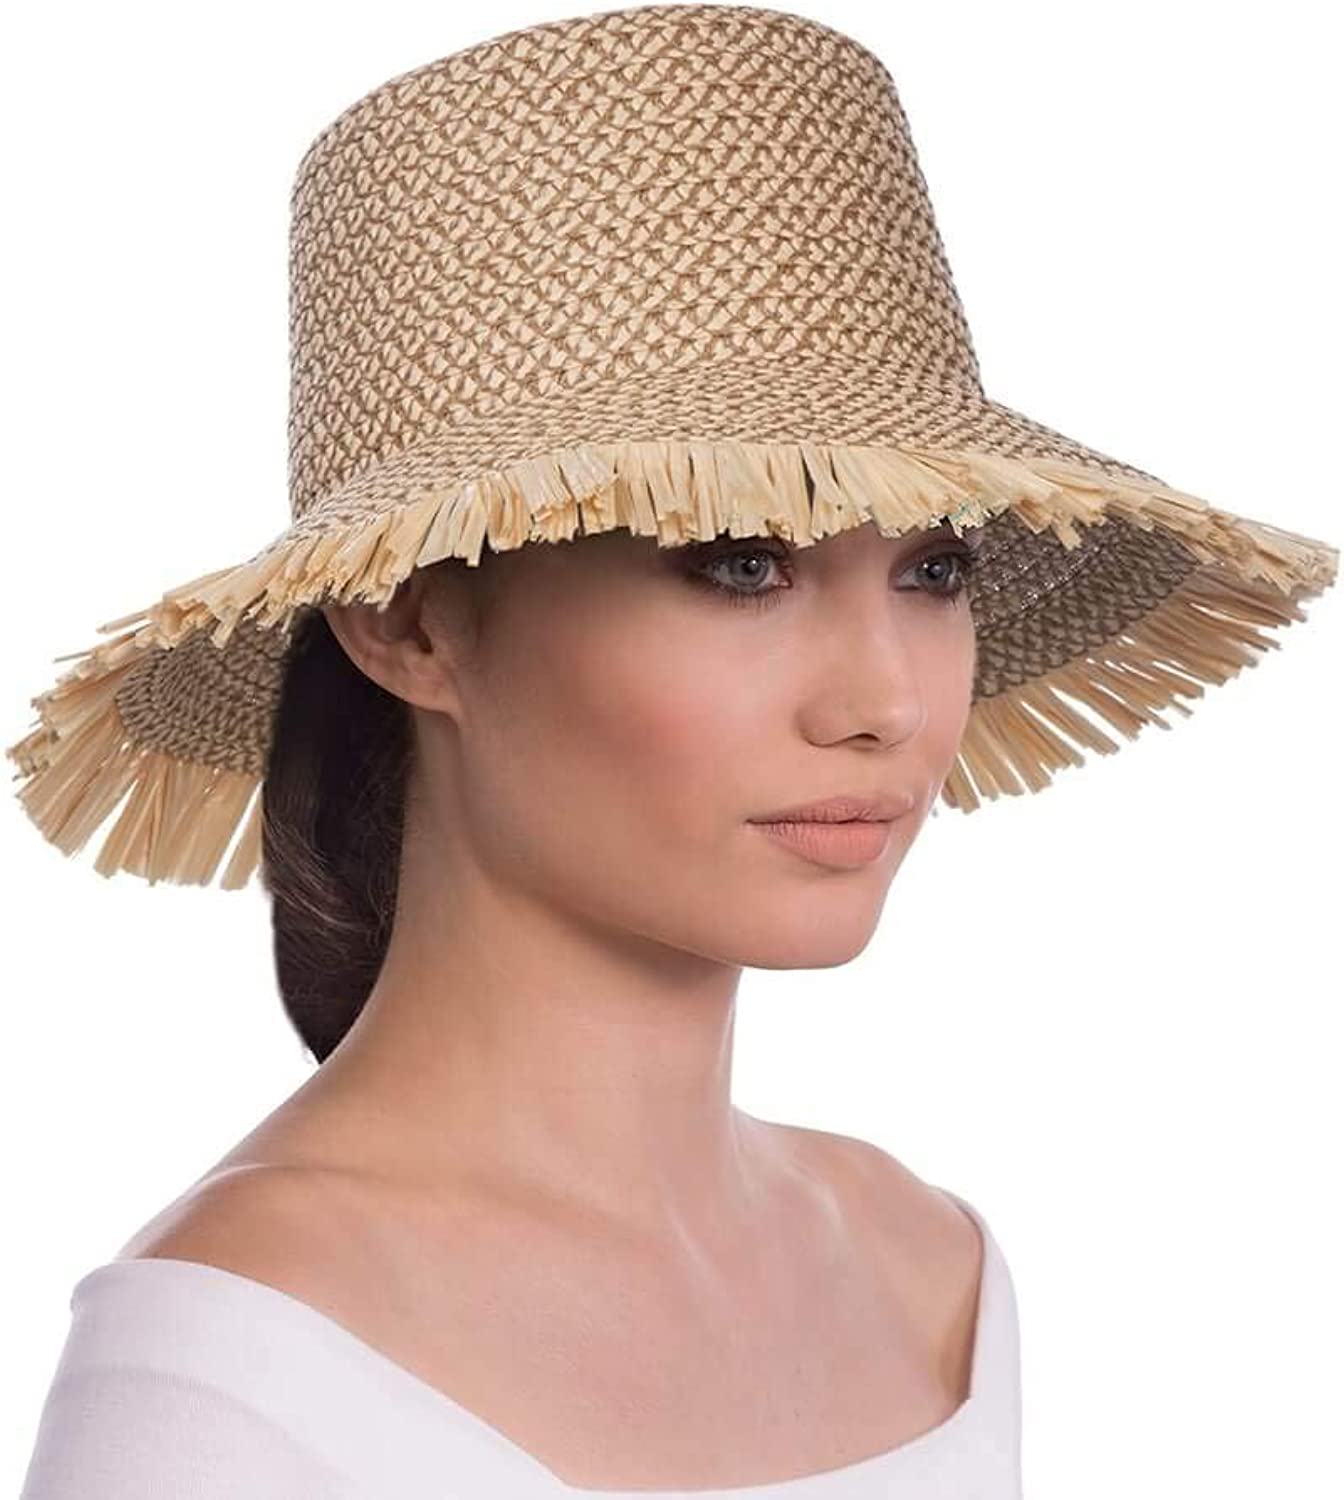 Eric Javits Luxury Fashion Designer Women's Headwear Hat  Tiki Bucket  Peanut